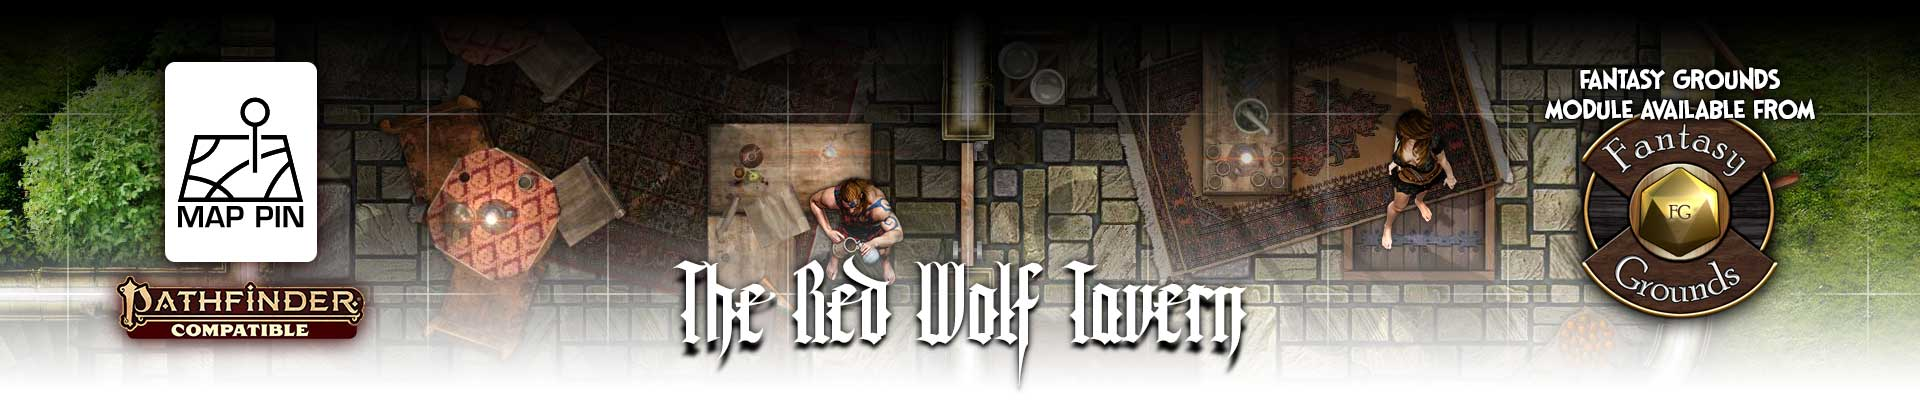 Map Pin - The Red Wolf Tavern